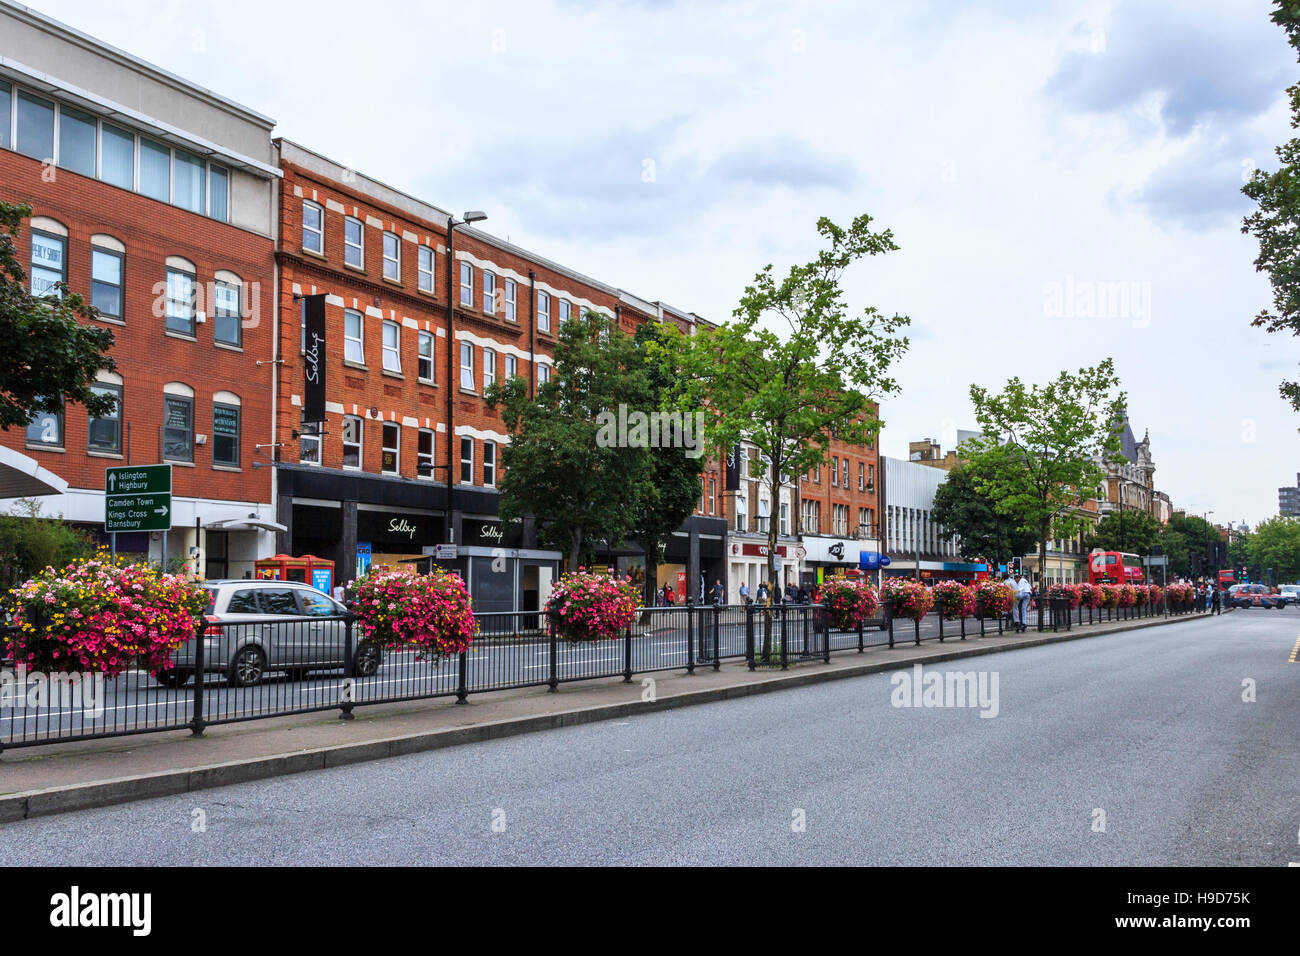 A view south along Holloway Road, North London, UK, after resurfacing and before road marking had been reapplied - Stock Image